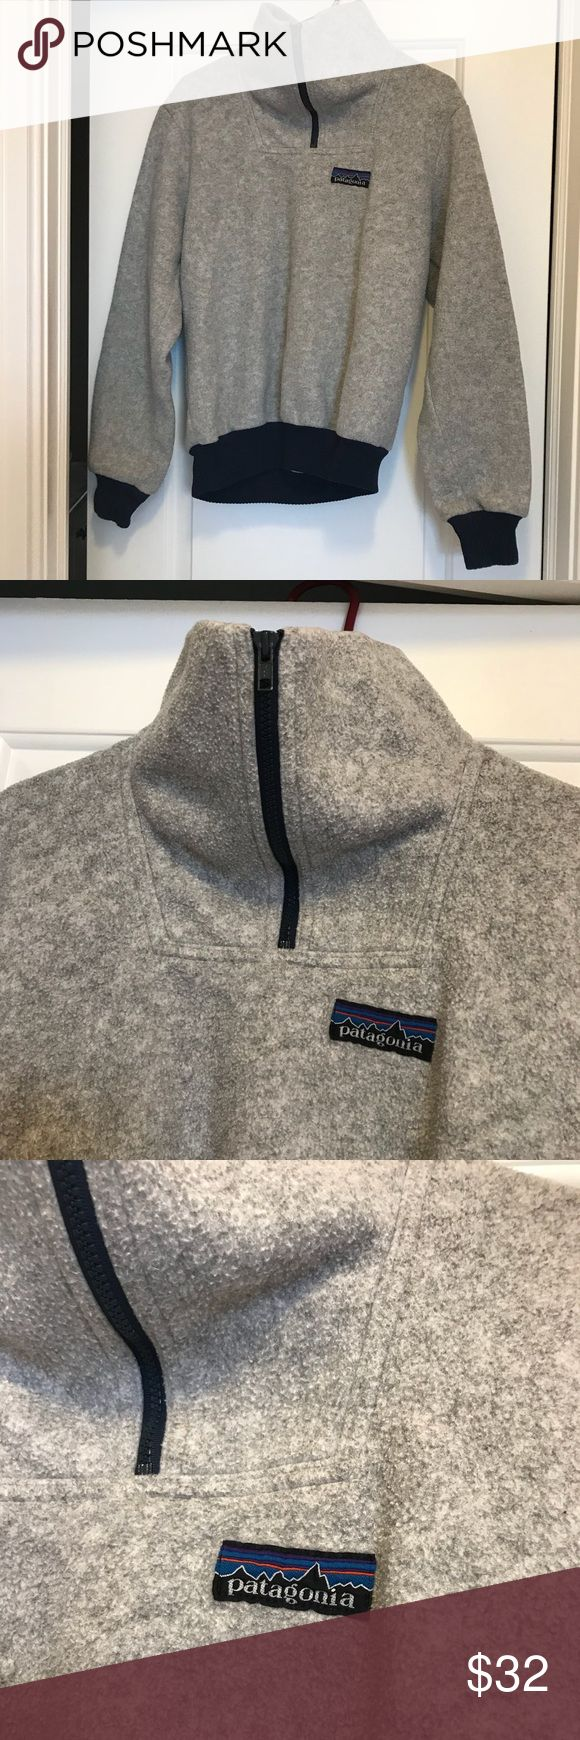 Patagonia fleece jacket Patagonia pull over fleece jacket blue and gray Patagonia Jackets & Coats